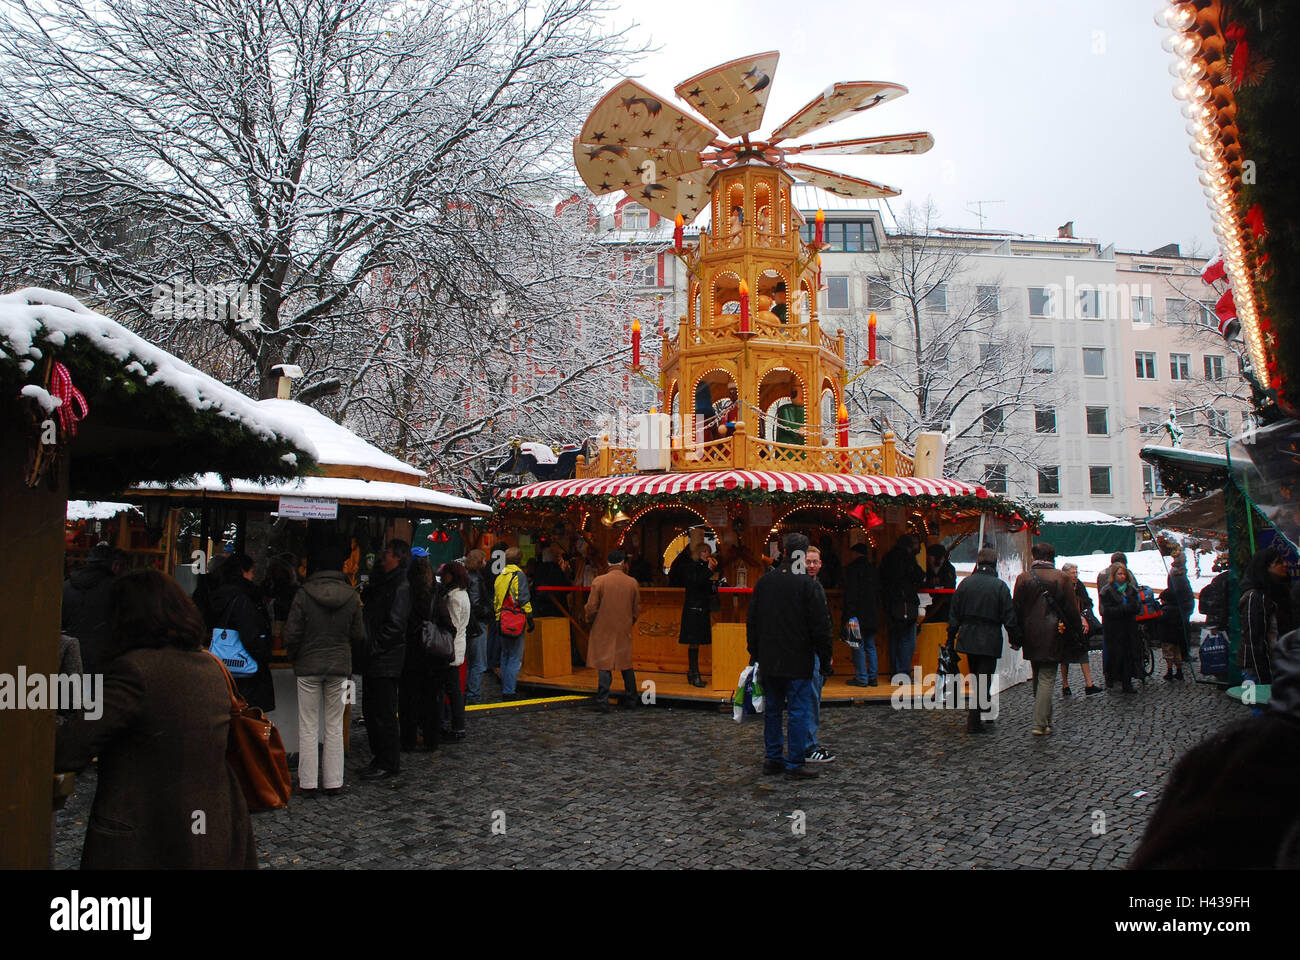 Christmas Pyramid.Germany Upper Bavaria Munich Cattle Market Christmas